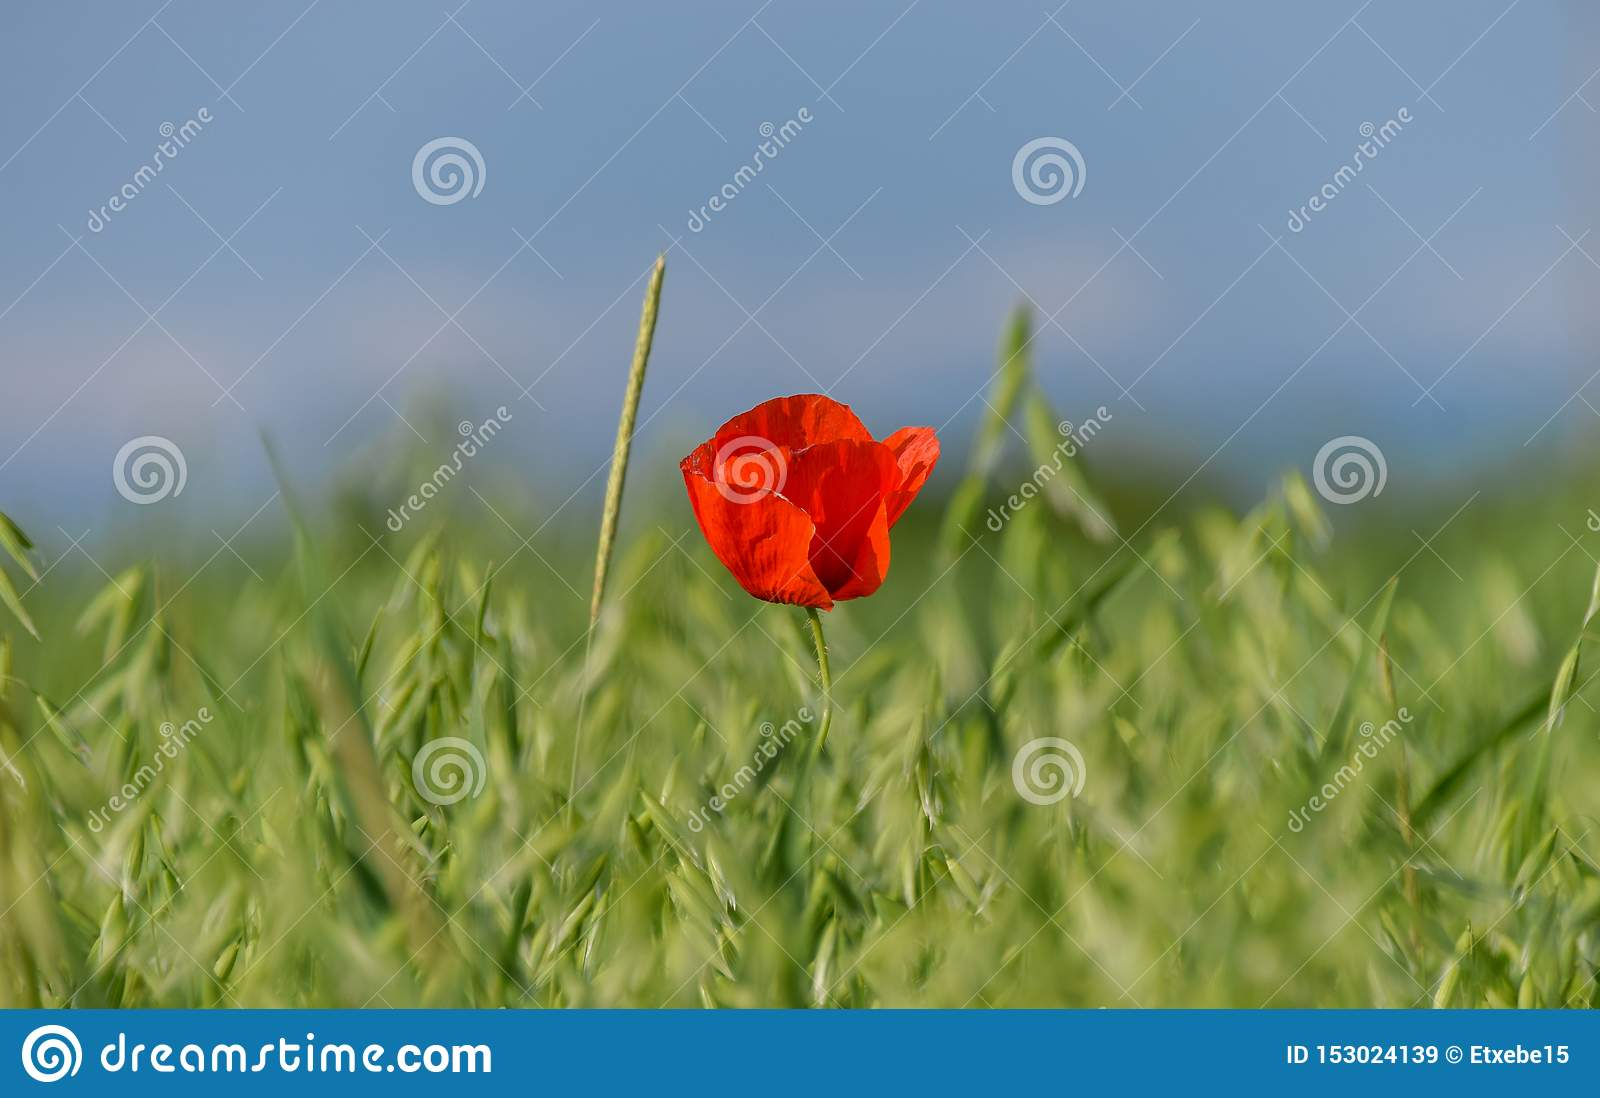 Red flower on a wheat green field